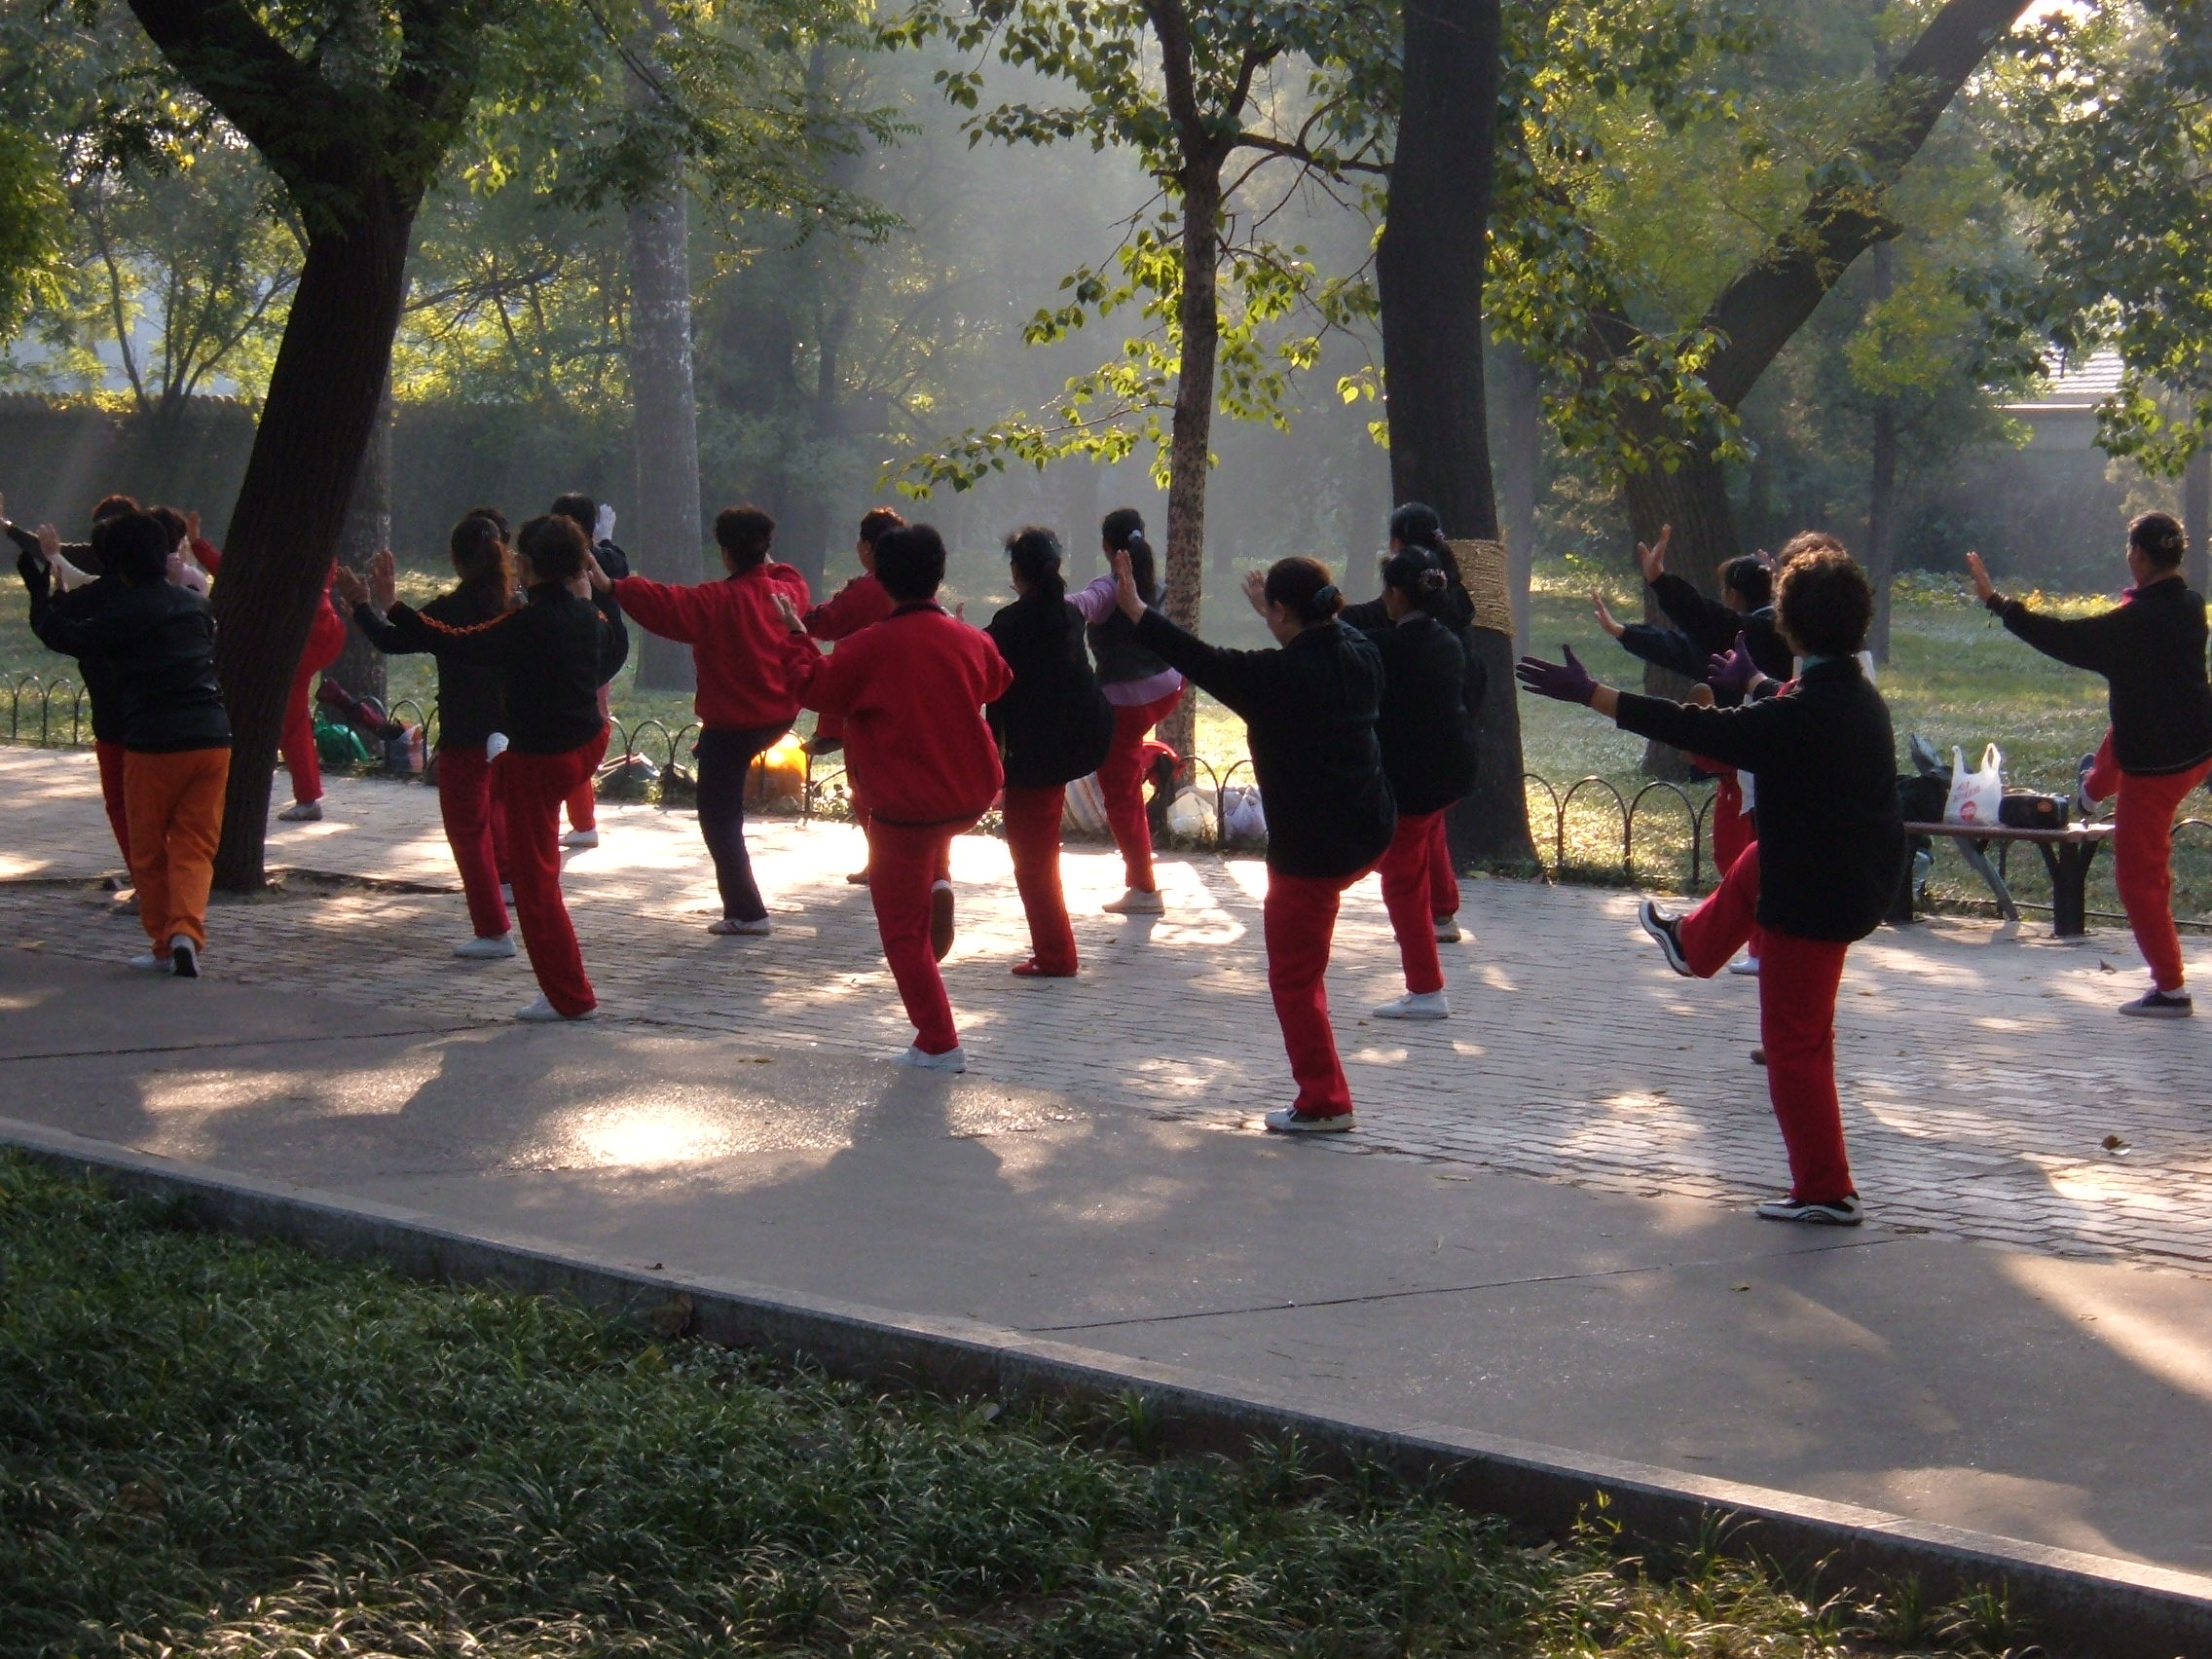 File:Tai Chi Chuan at Temple of Heaven on a Sunday.JPG - Wikimedia ...